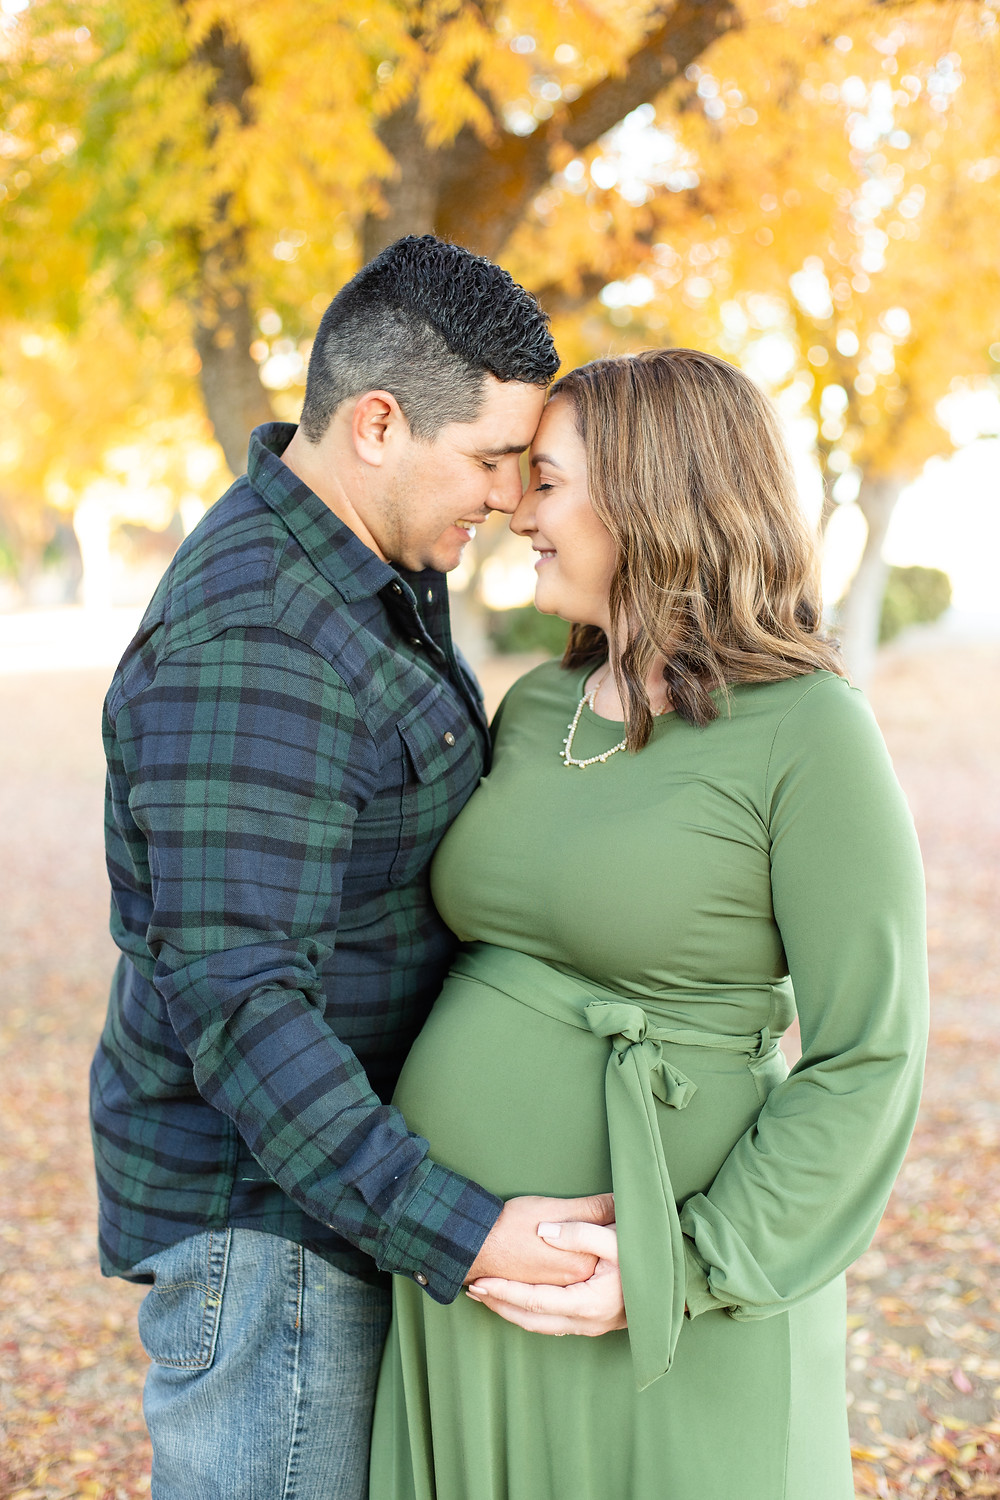 Lifestyle session by family maternity photographer Ashley Norton in Lost Lake, CA.